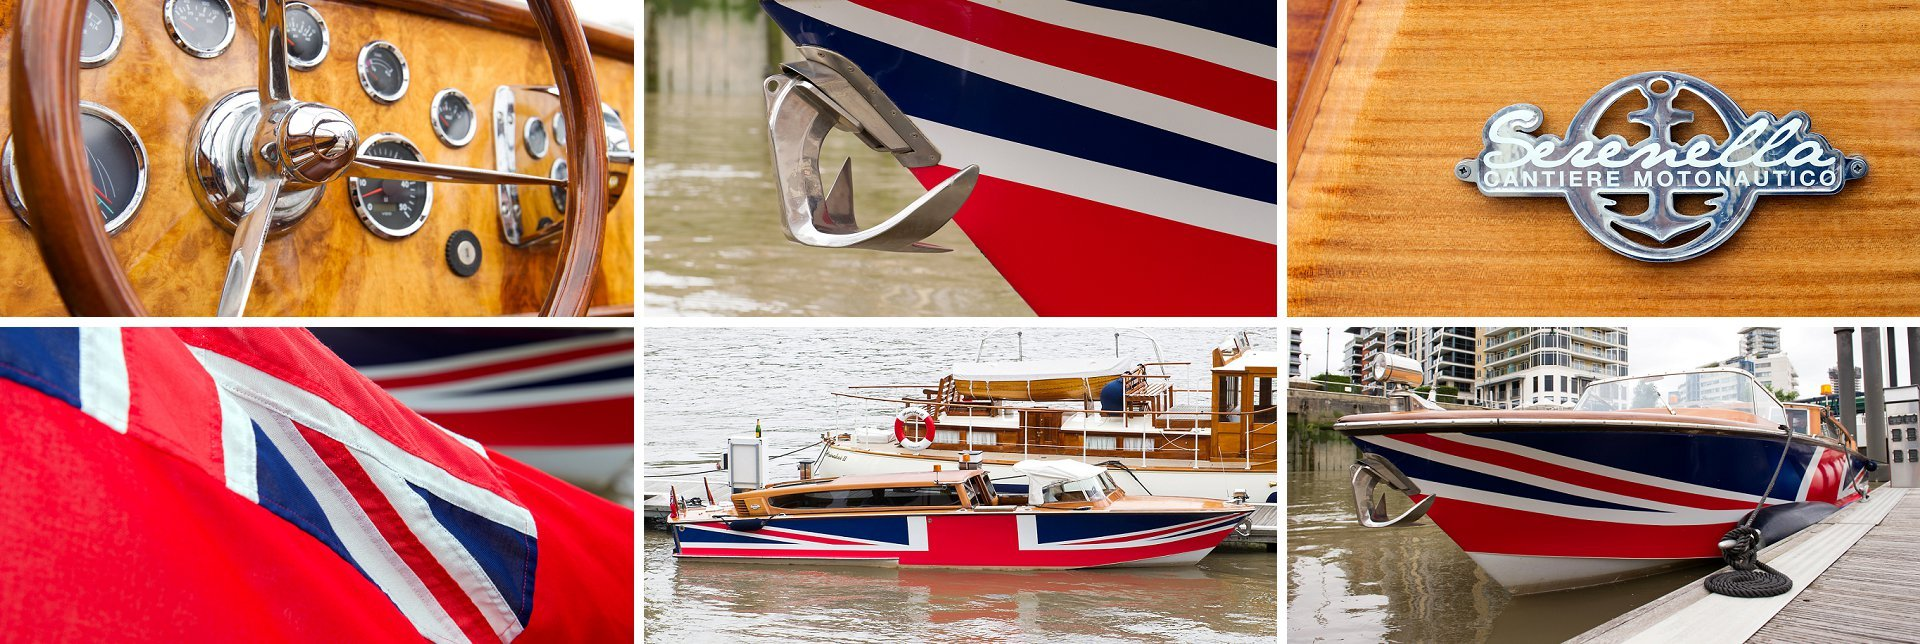 thames-limo-romantic-luxury-venetian-water-limousine-serenella-cantiere-bespoke-charter-thames-river-london-imperial-wharf-marina-emma-duggan-photography